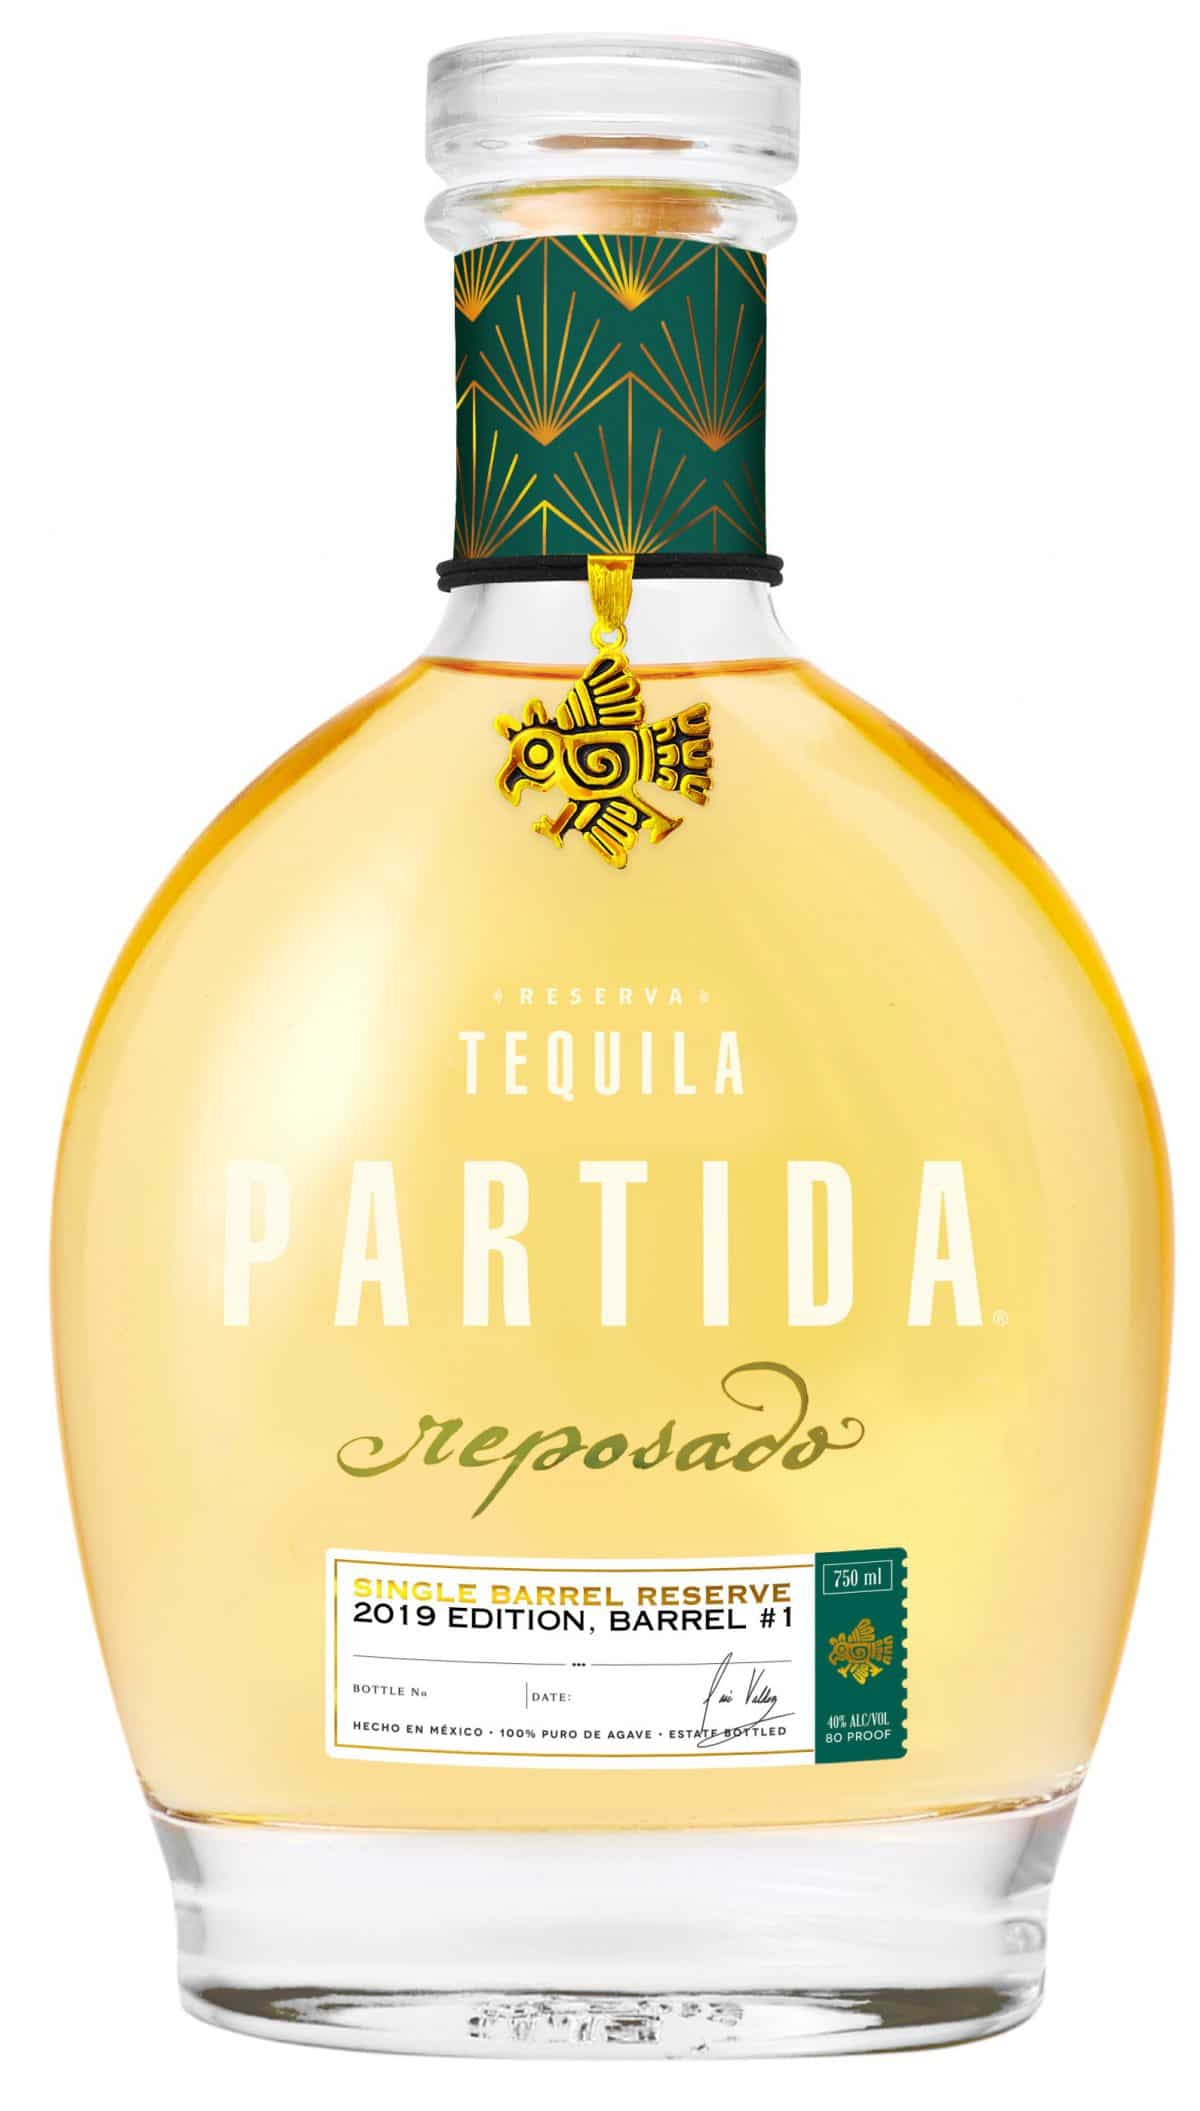 Tequila Partida Introduces First Nationally Available Limited-release Single Barrel Reserve Reposado photo